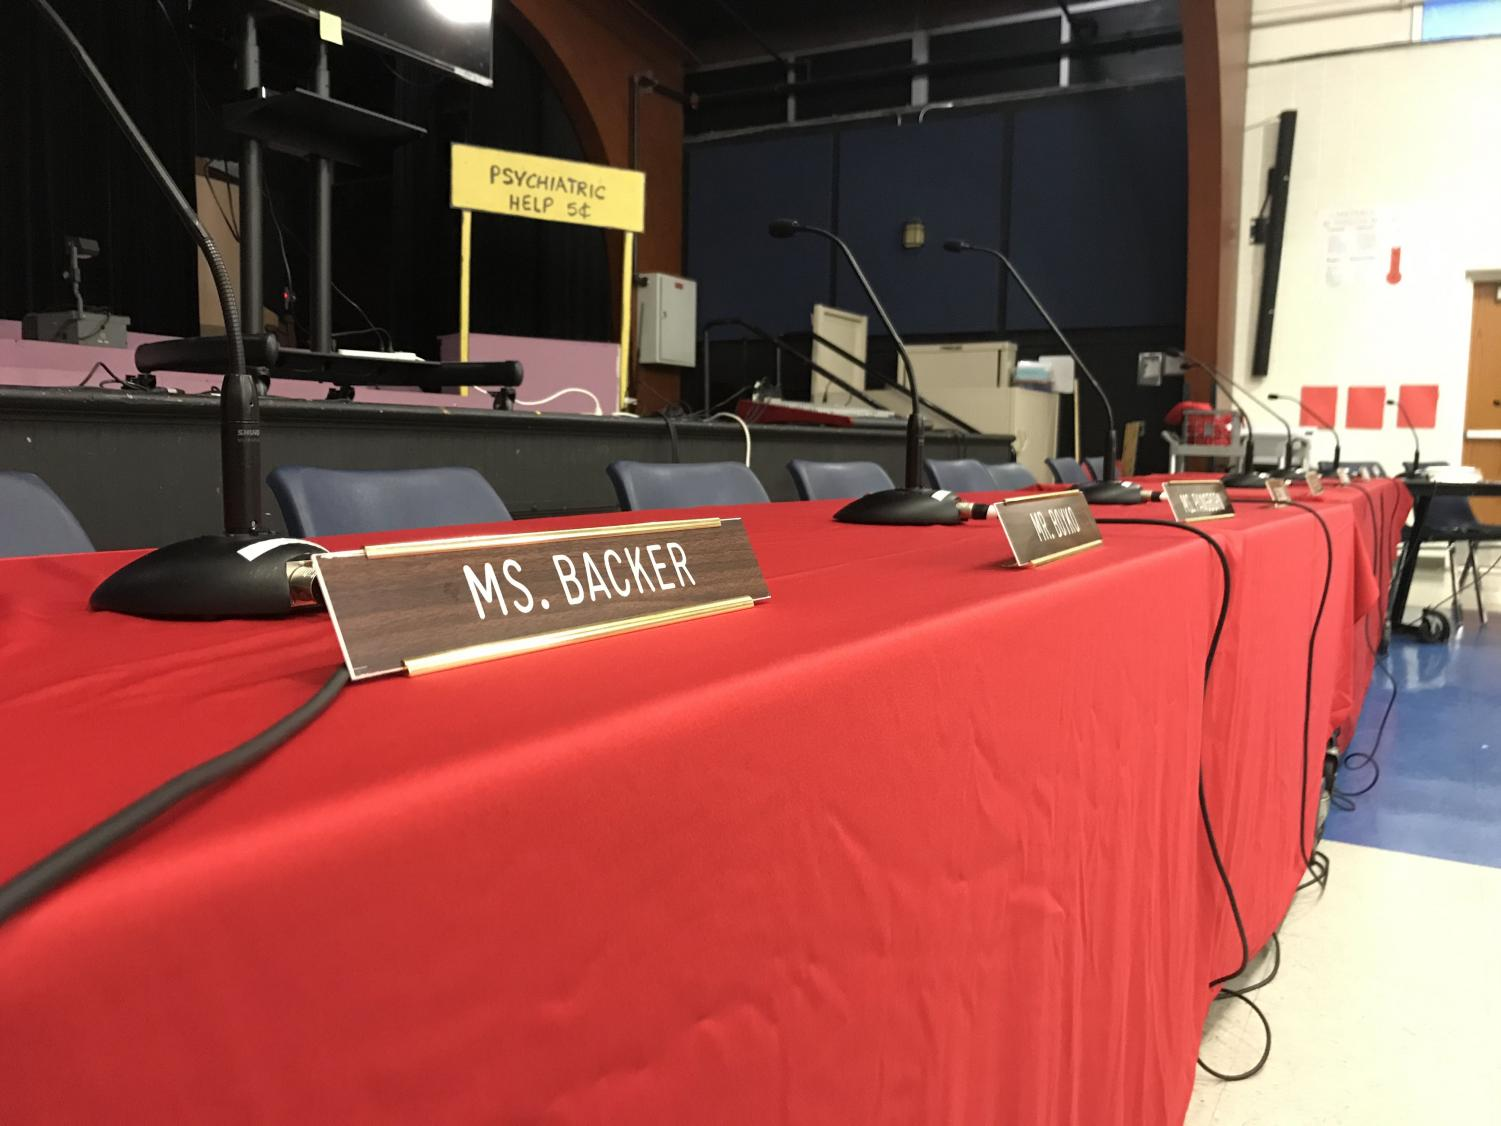 Last night's board meeting took a different path as Frost amended the previously distributed meeting agenda, announcing that Backer and the board had agreed on a joint statement of resolution instead Feb. 10.